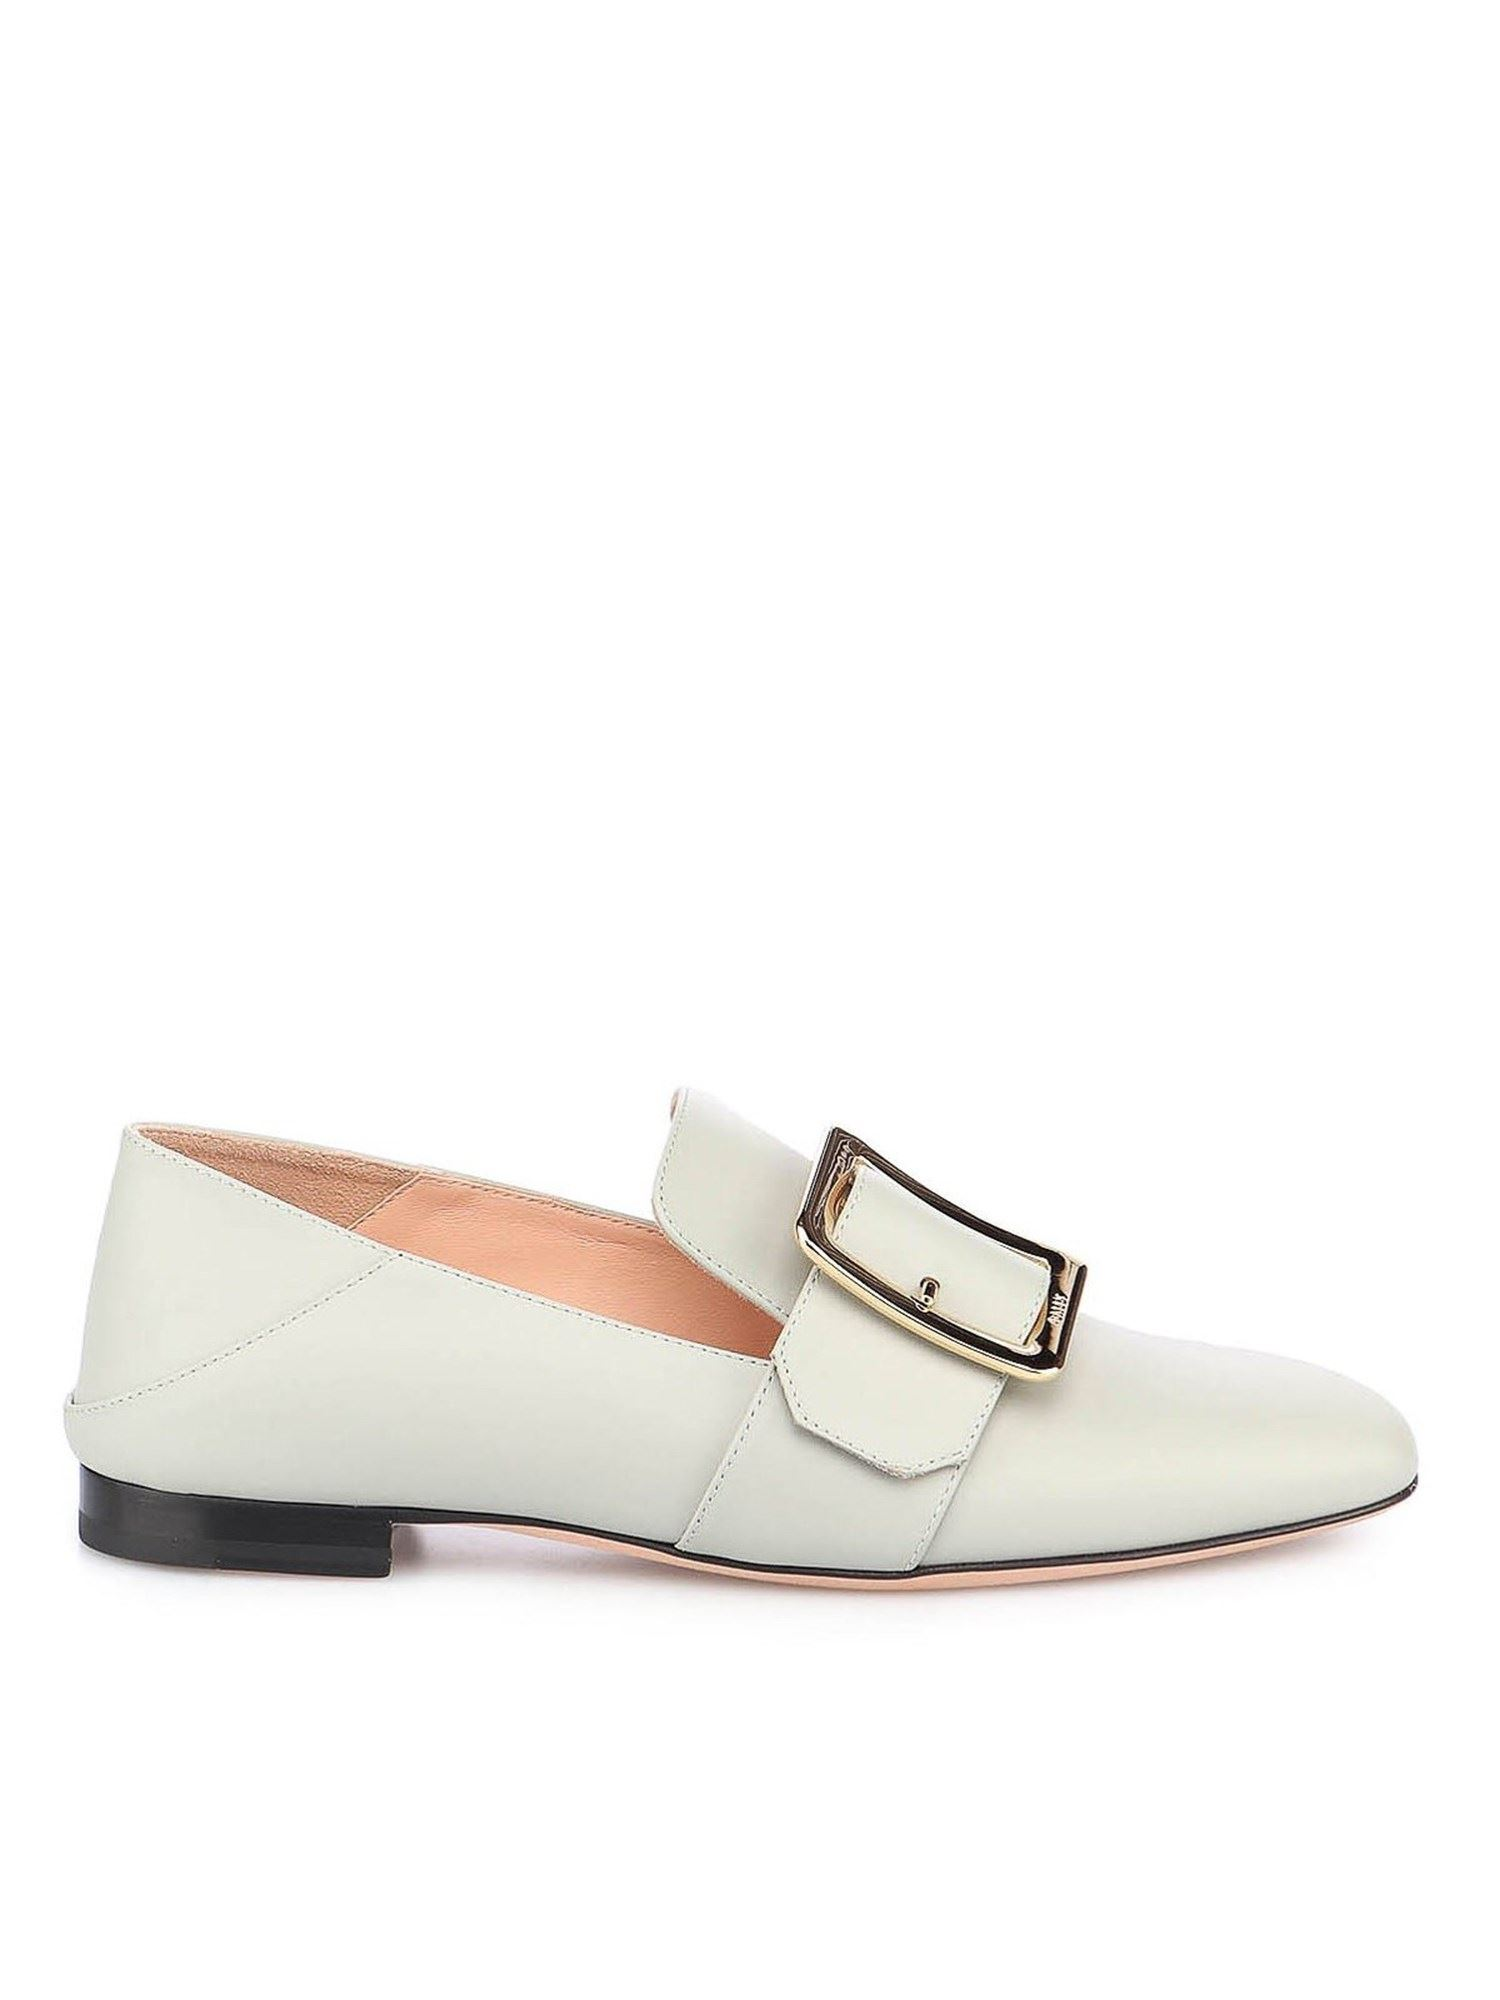 Bally JANELLE LOAFERS IN LIGHT BLUE